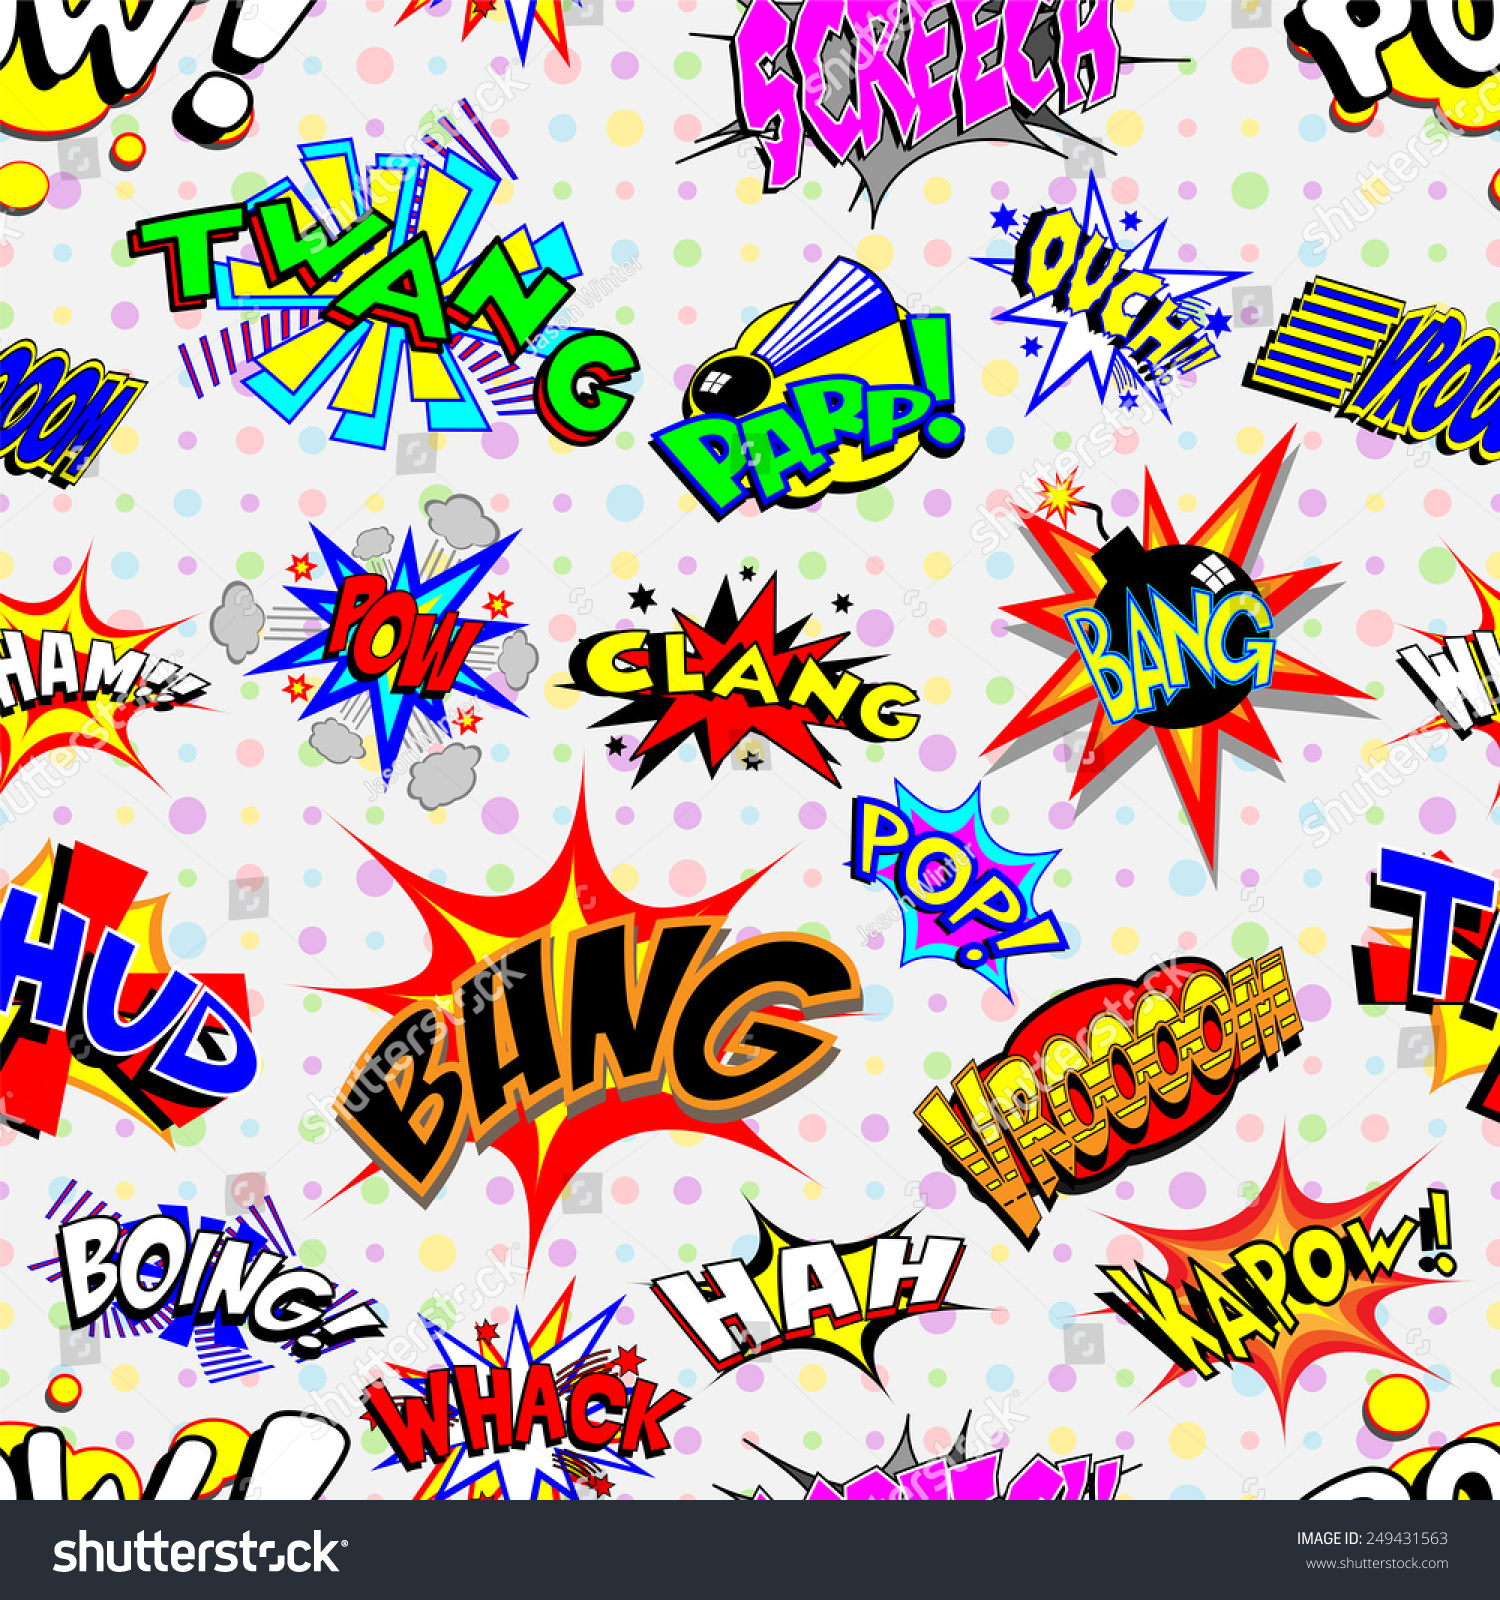 Colorful Cartoon Text Captions Explosions Noises Stock Vector ...